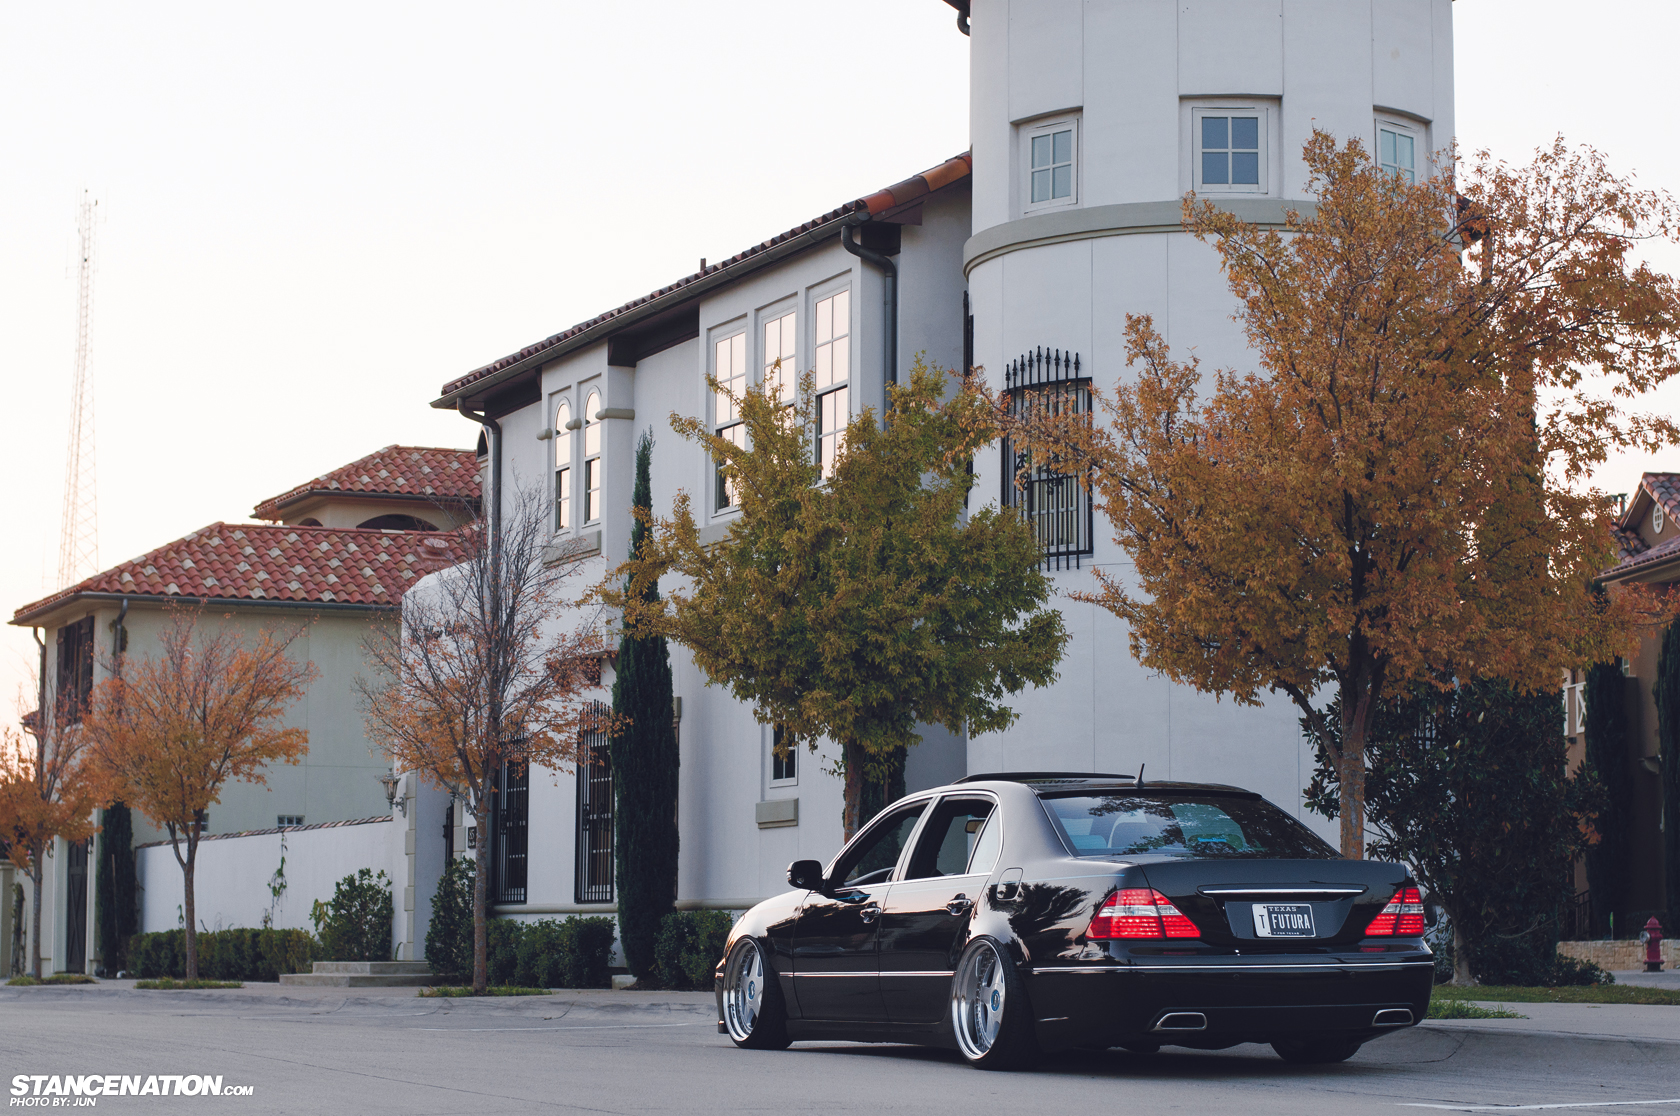 http://www.stancenation.com/wp-content/uploads/2012/11/234.jpg